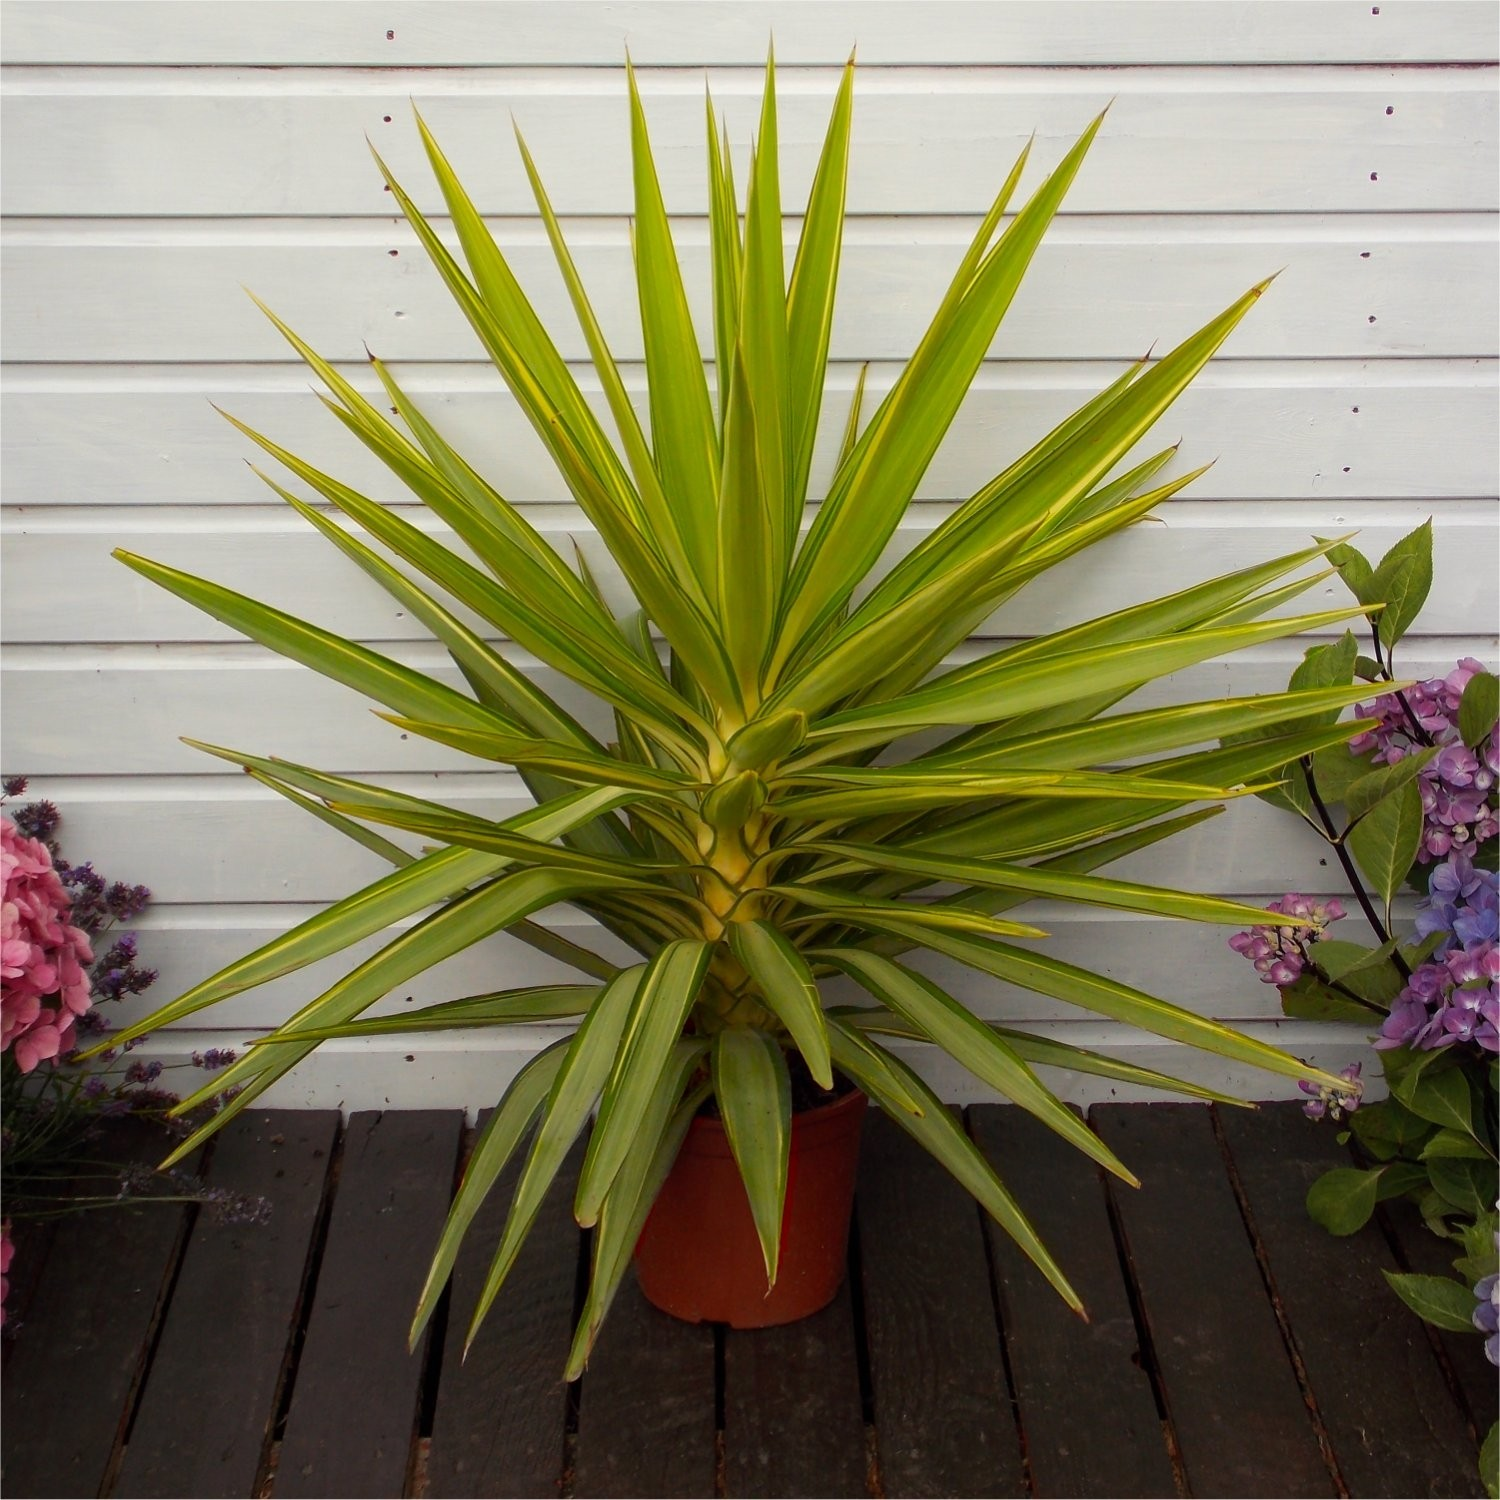 SPECIAL DEAL   LARGE Patio Adams Needle Yucca Jewel Palm Trees   80 100cms